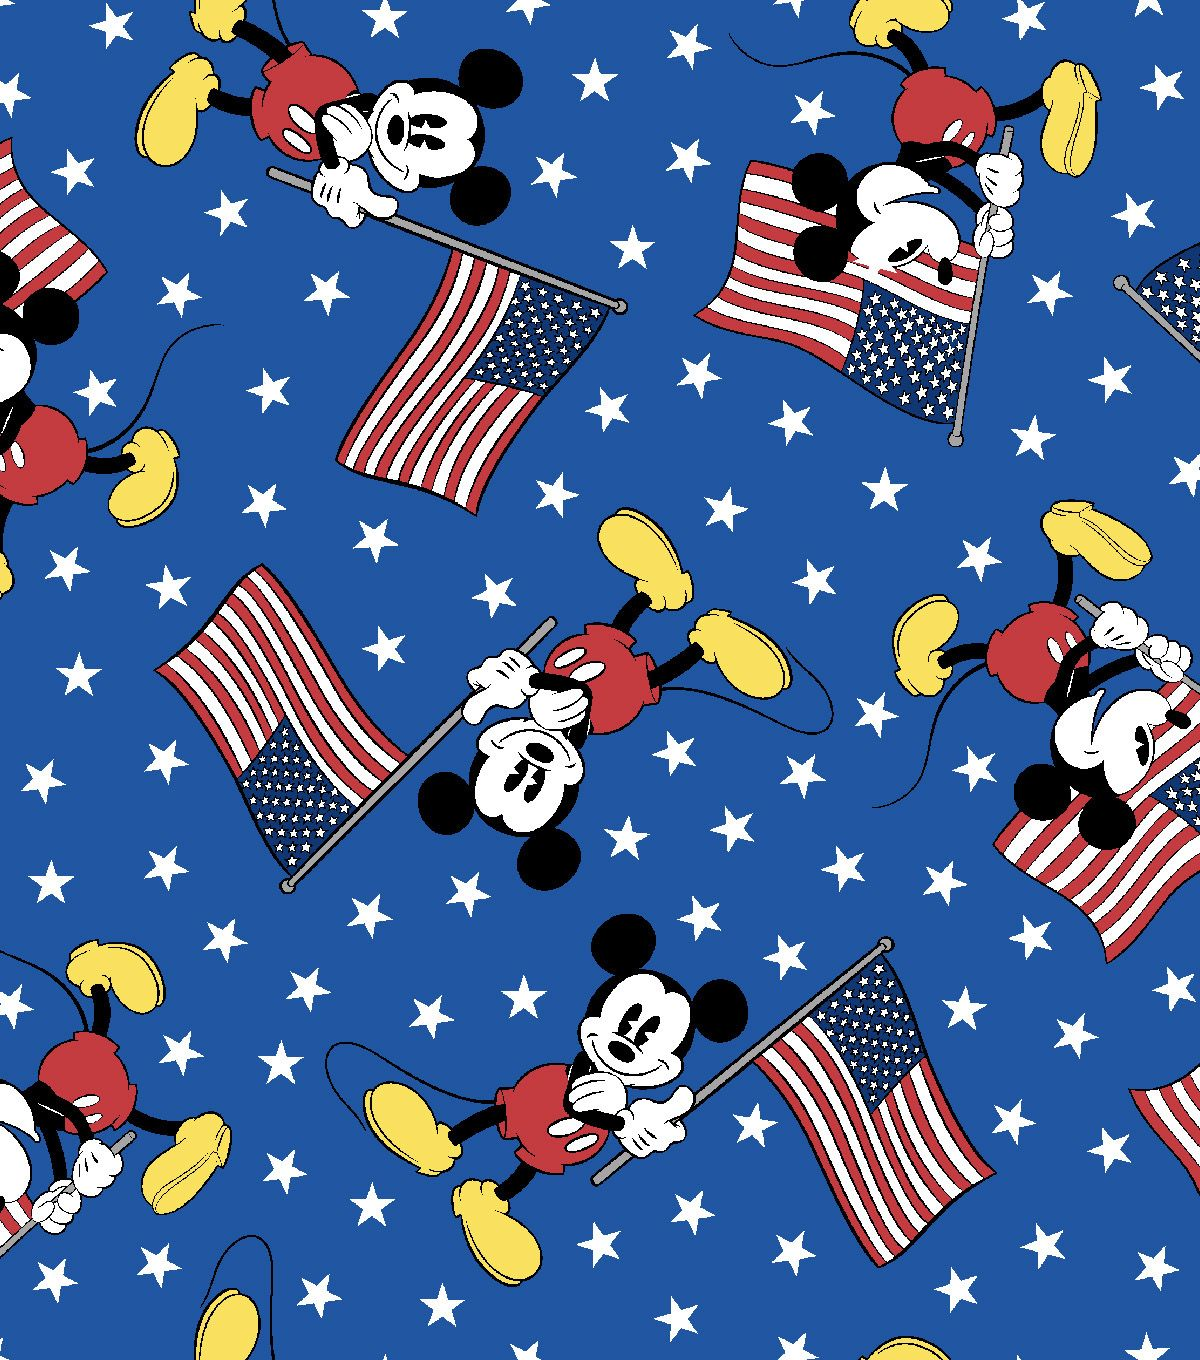 Patriotic Cotton Fabric 43 Mickey Team With Usa Flag Sewing